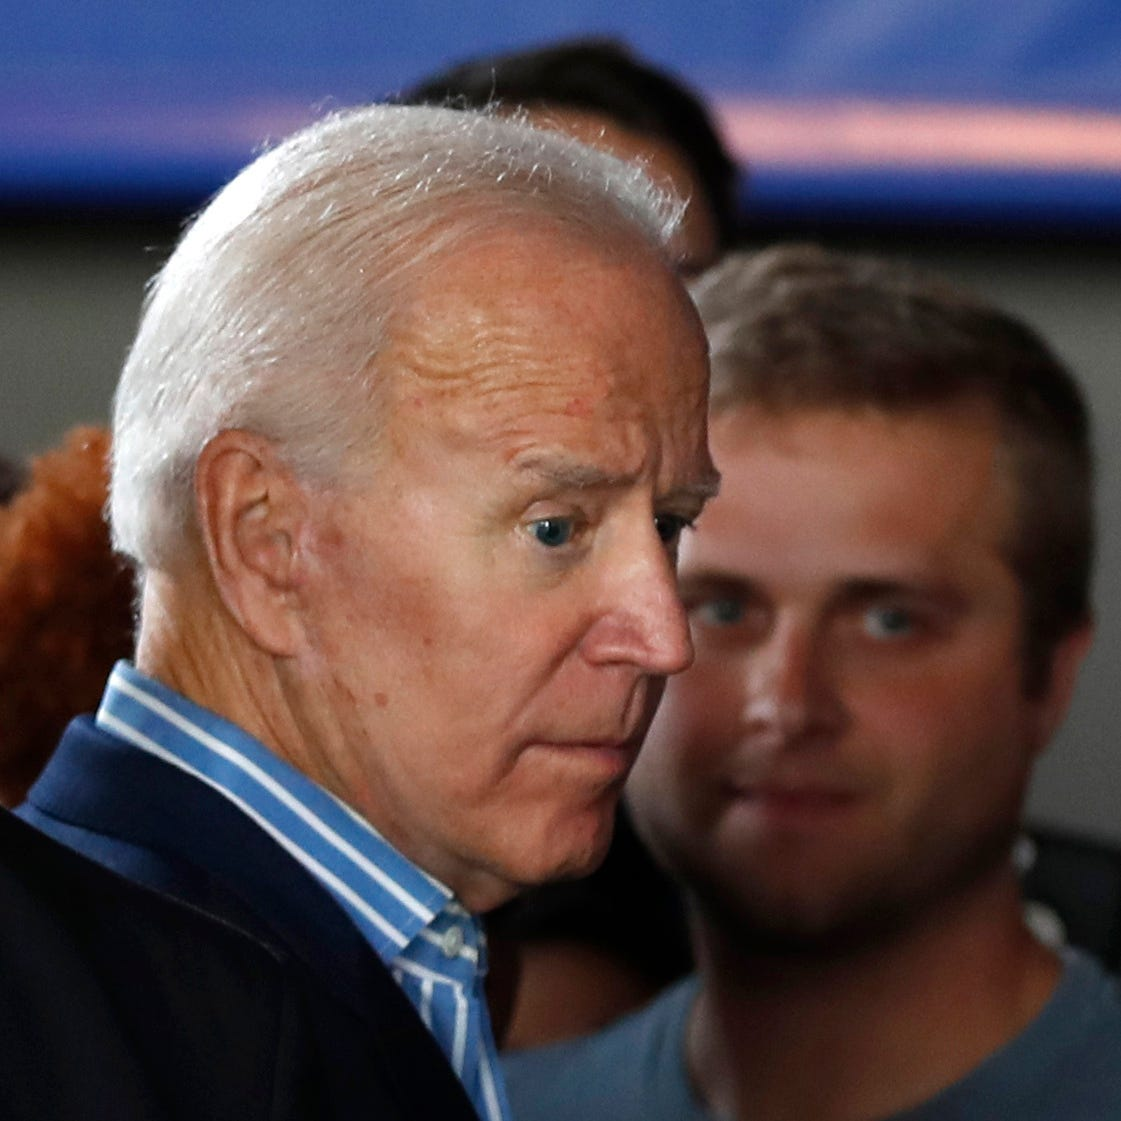 Biden's rise tests Trump plan of casting foes as socialists